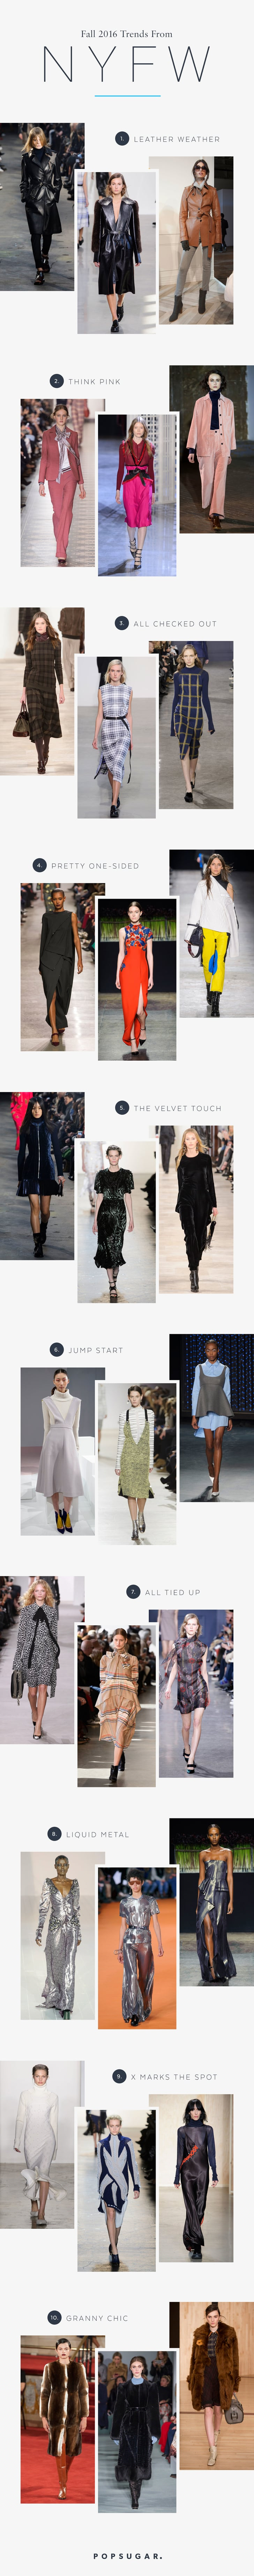 Fall 2016 Trends | Runway